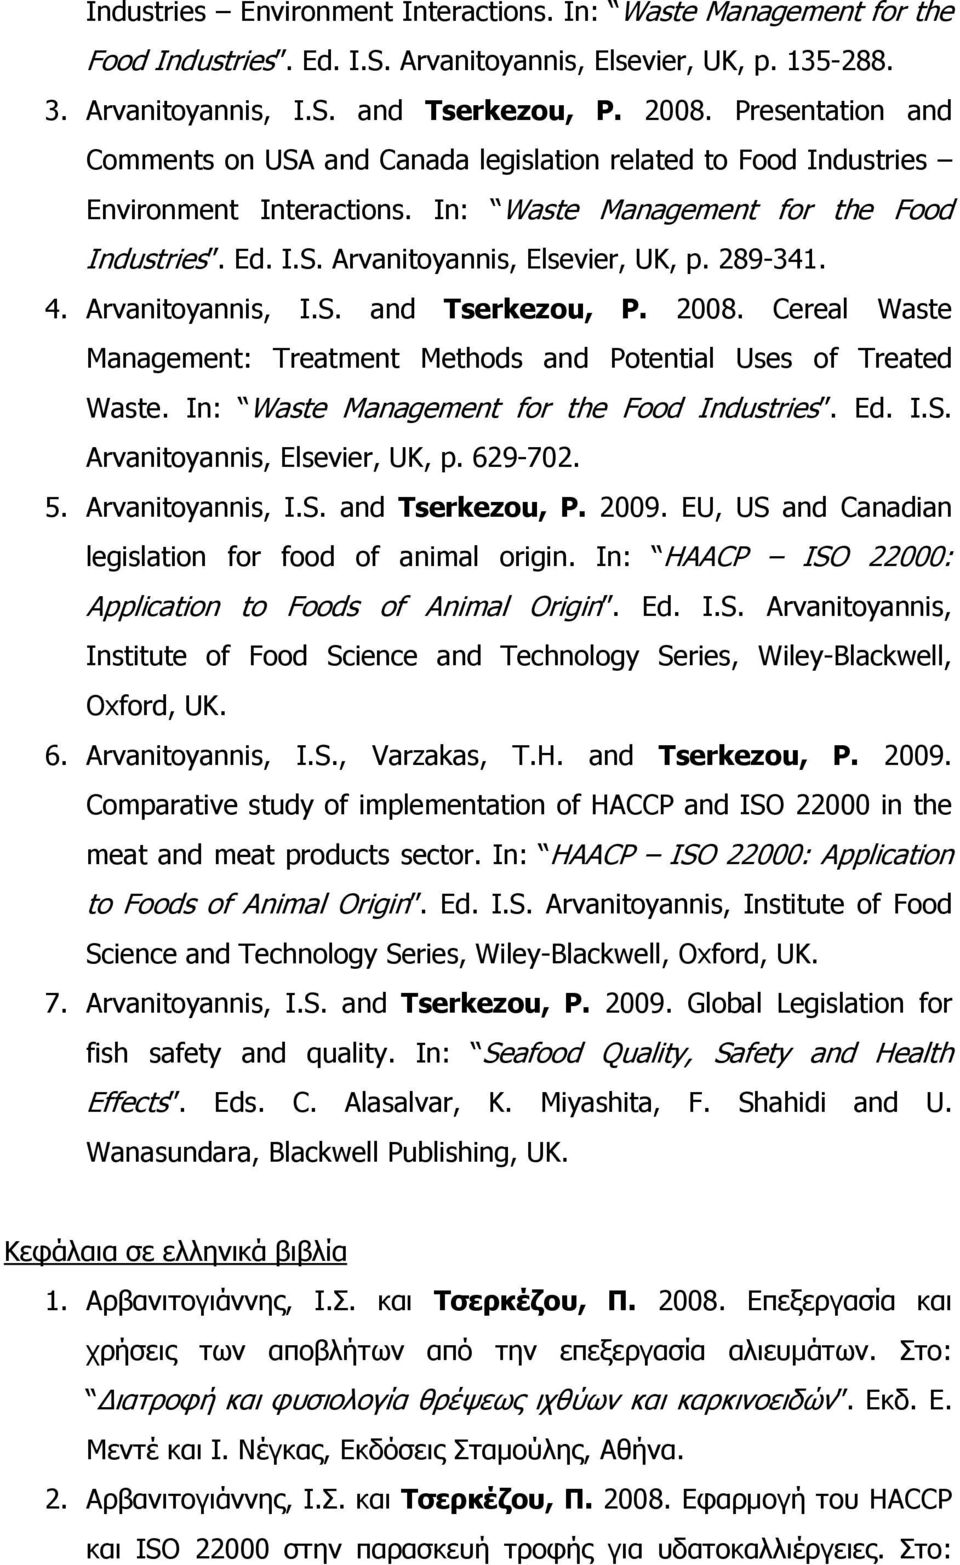 289-341. 4. Arvanitoyannis, I.S. and Tserkezou, P. 2008. Cereal Waste Management: Treatment Methods and Potential Uses of Treated Waste. In: Waste Management for the Food Industries. Ed. I.S. Arvanitoyannis, Elsevier, UK, p.